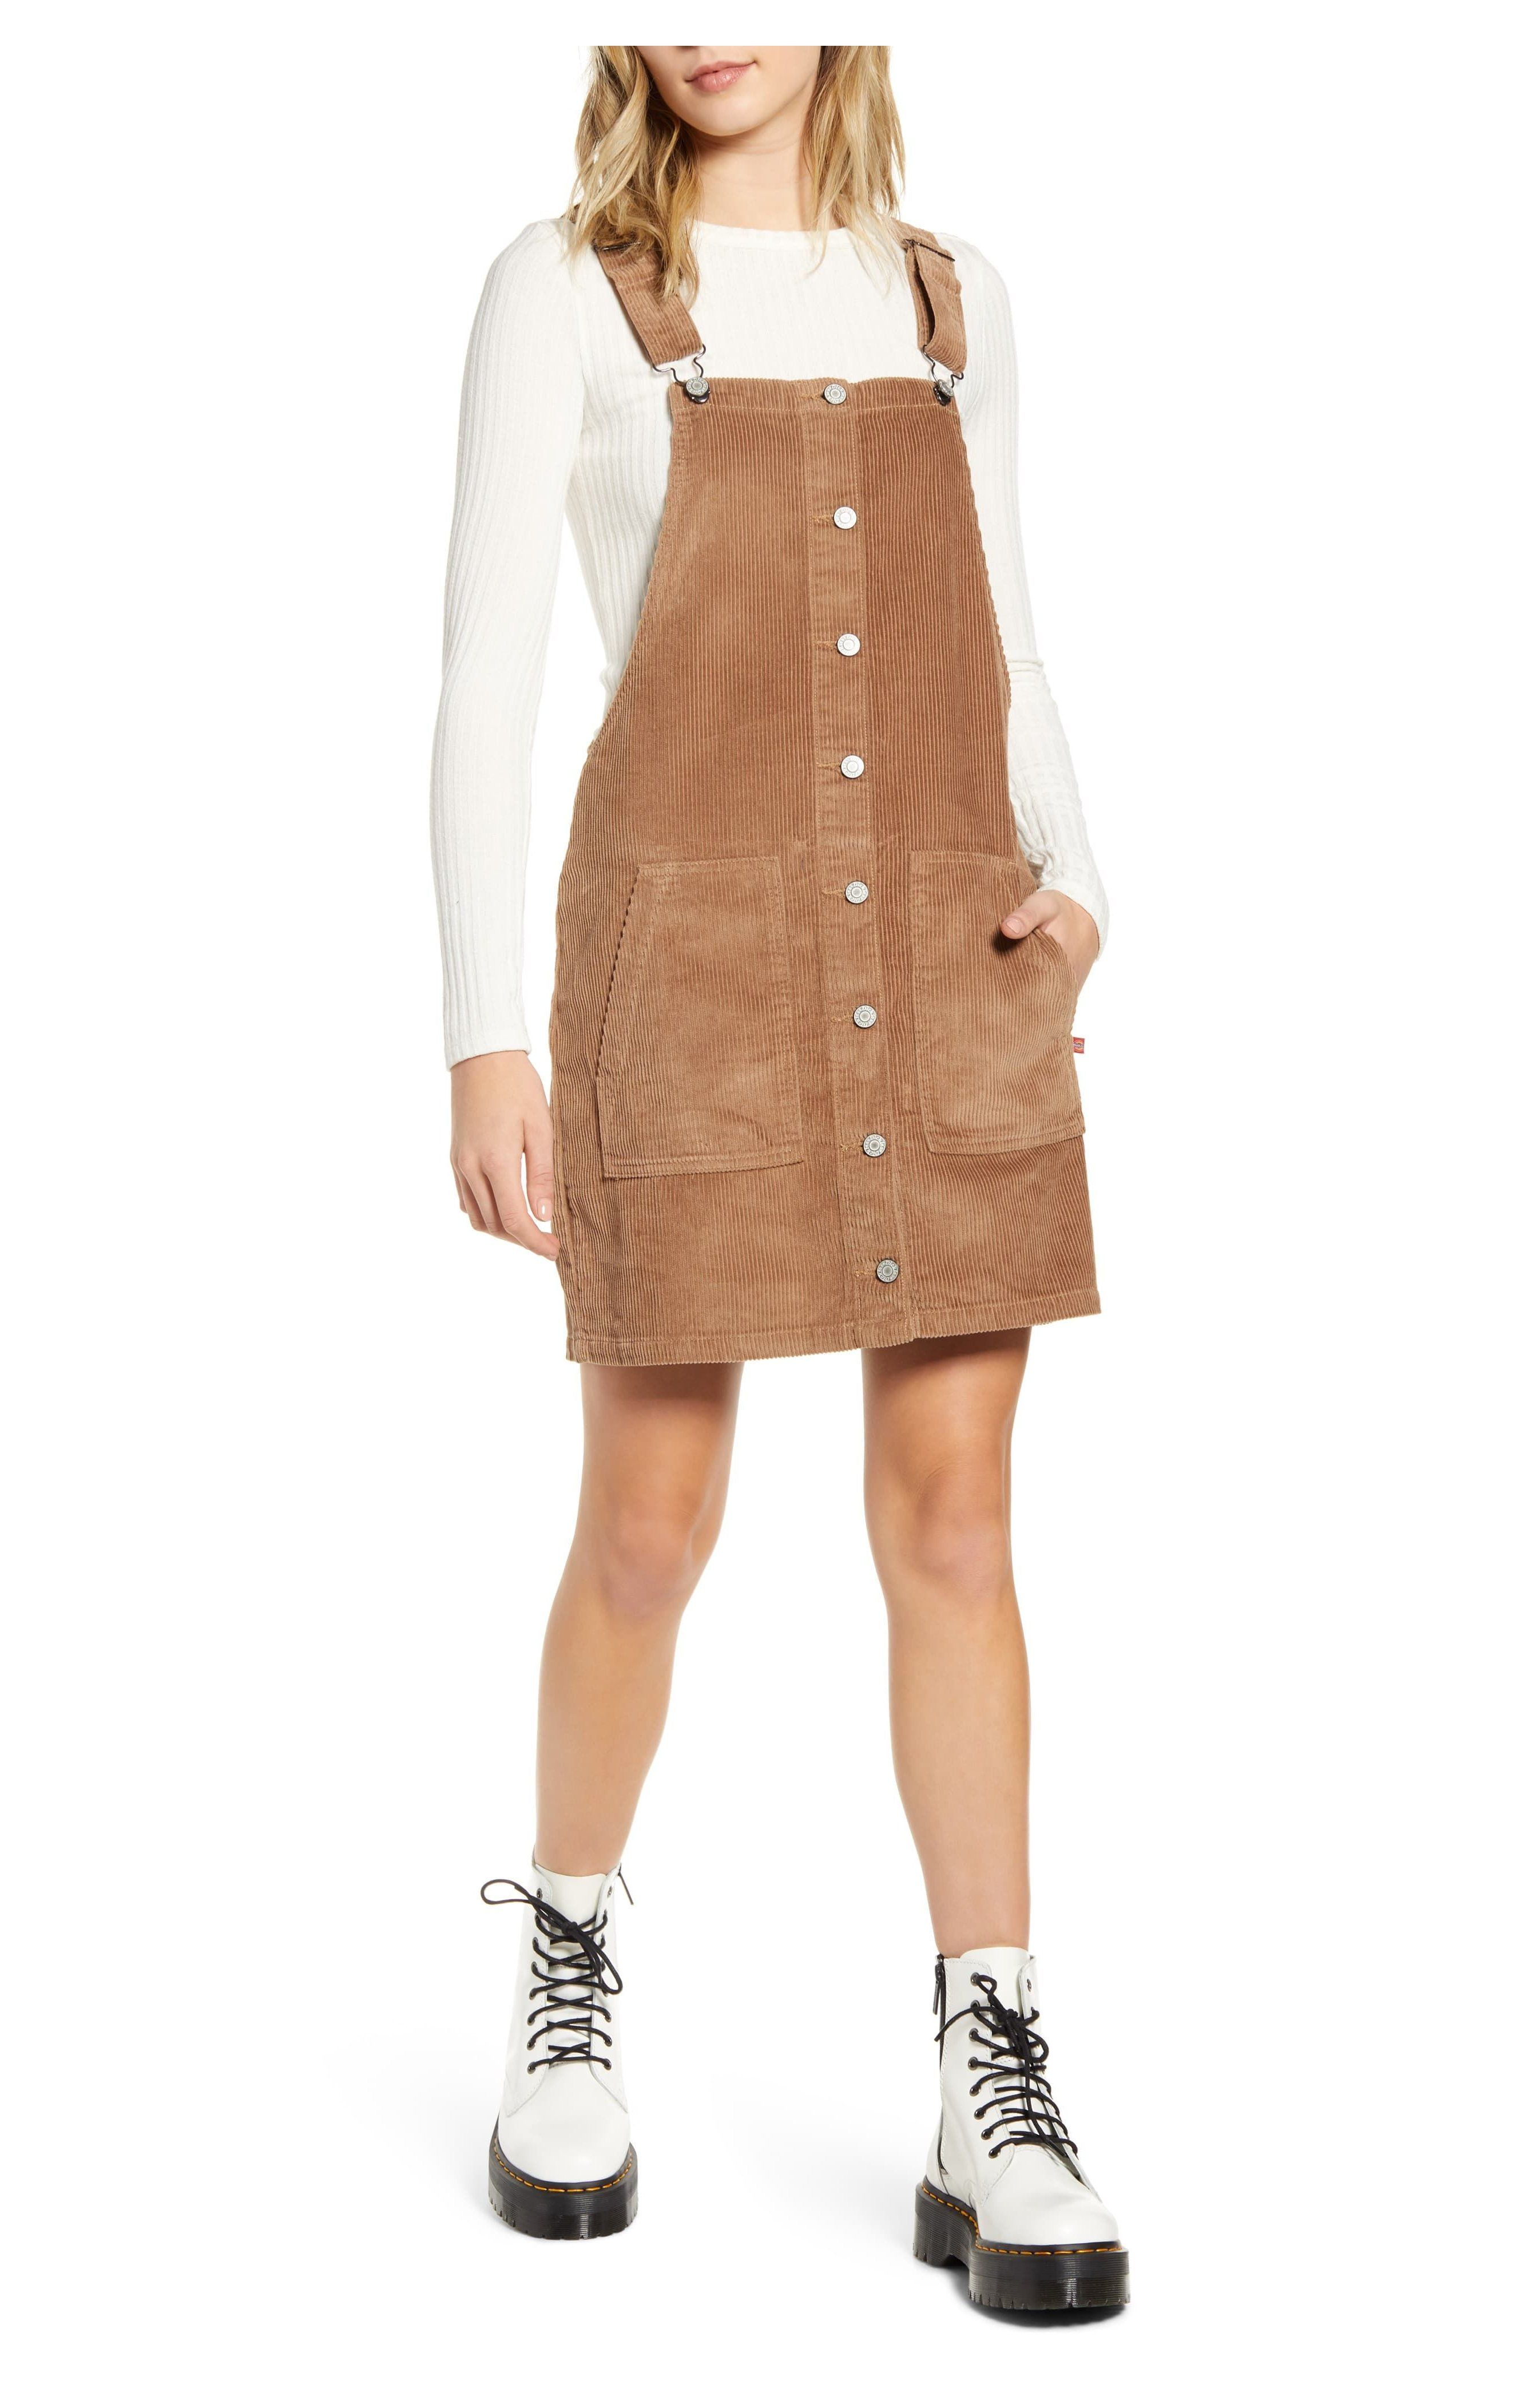 28++ Brown overall dress ideas in 2021